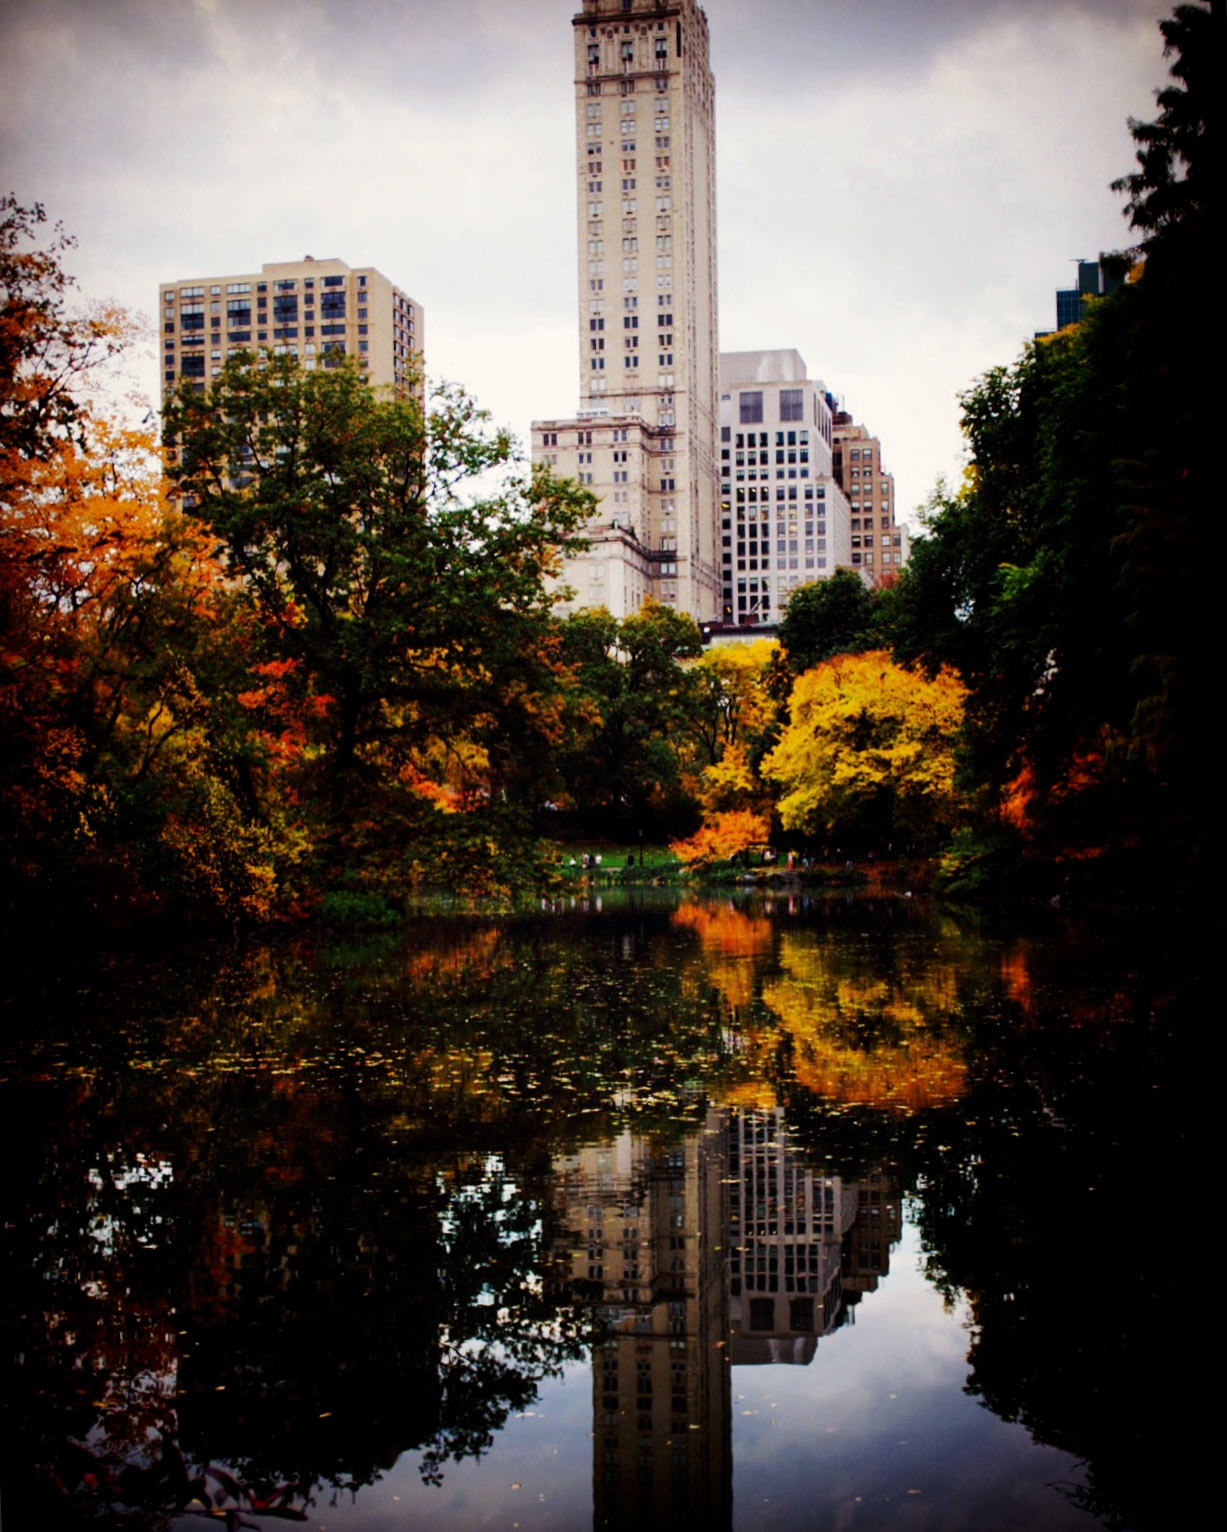 Pierre_Hotel_Reflected_From_Central_Park_Pond